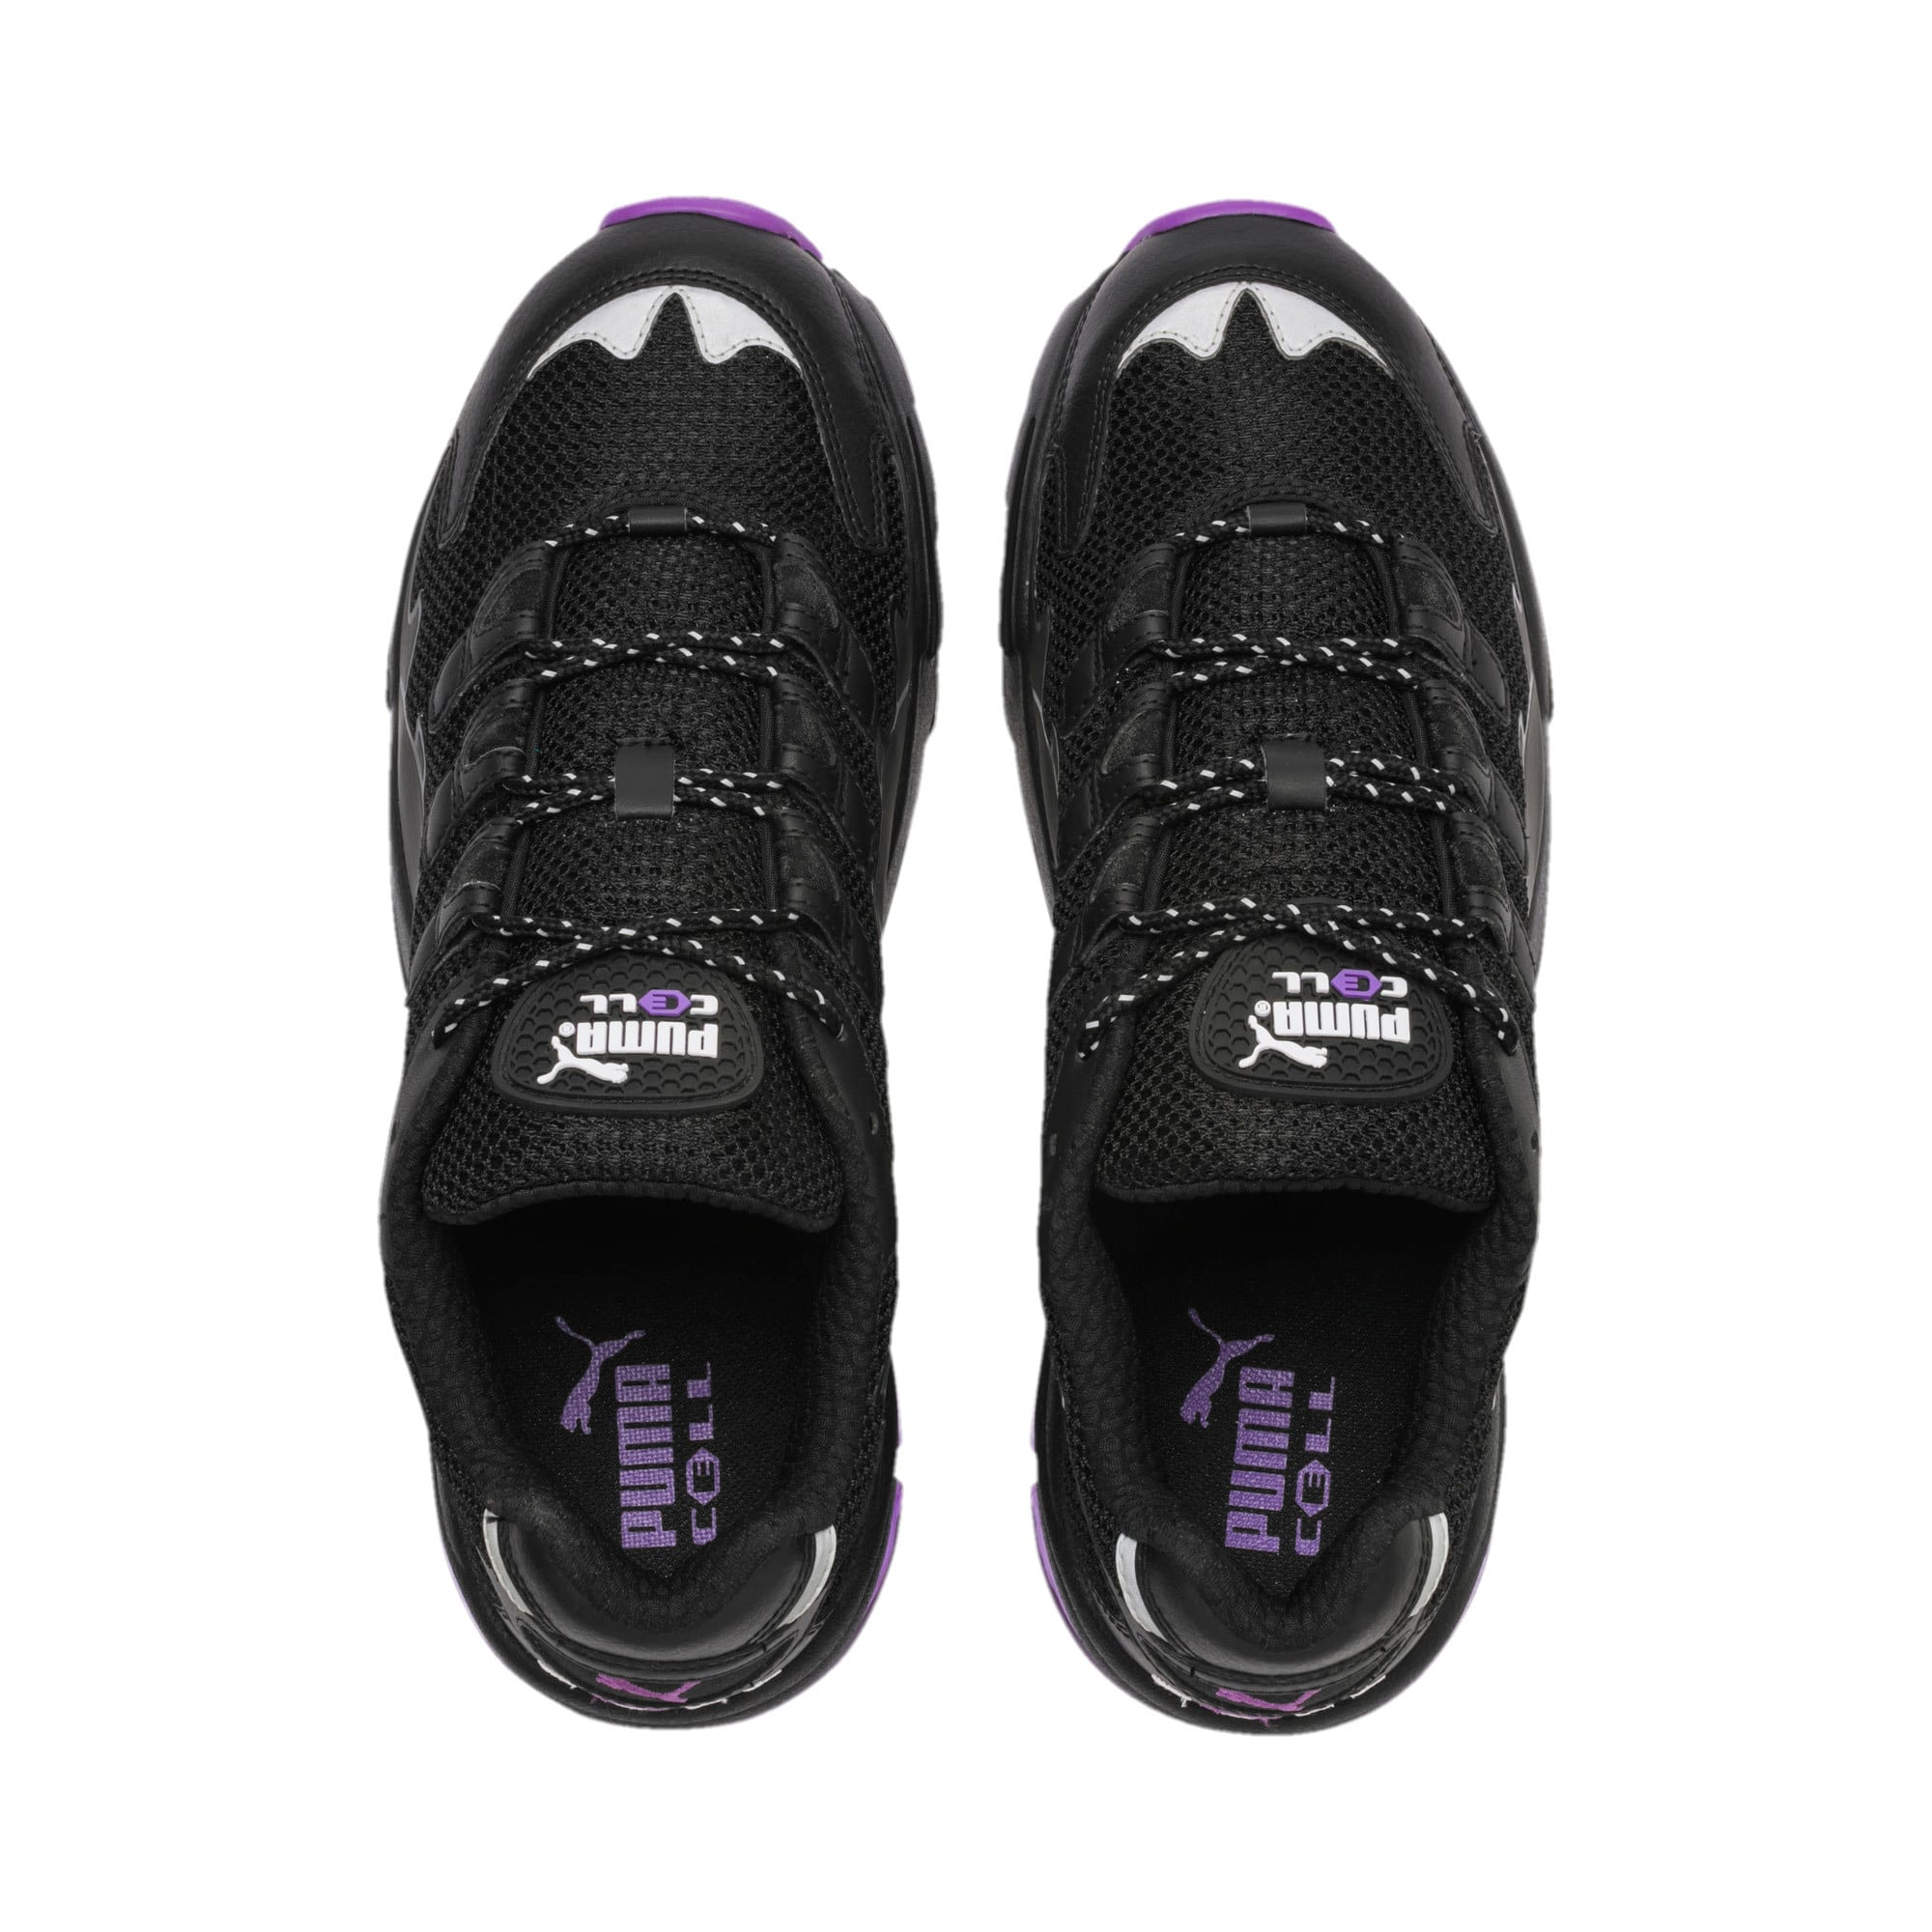 Thumbnail 7 of Basket CELL Alien Kotto, Puma Black-Puma Black, medium